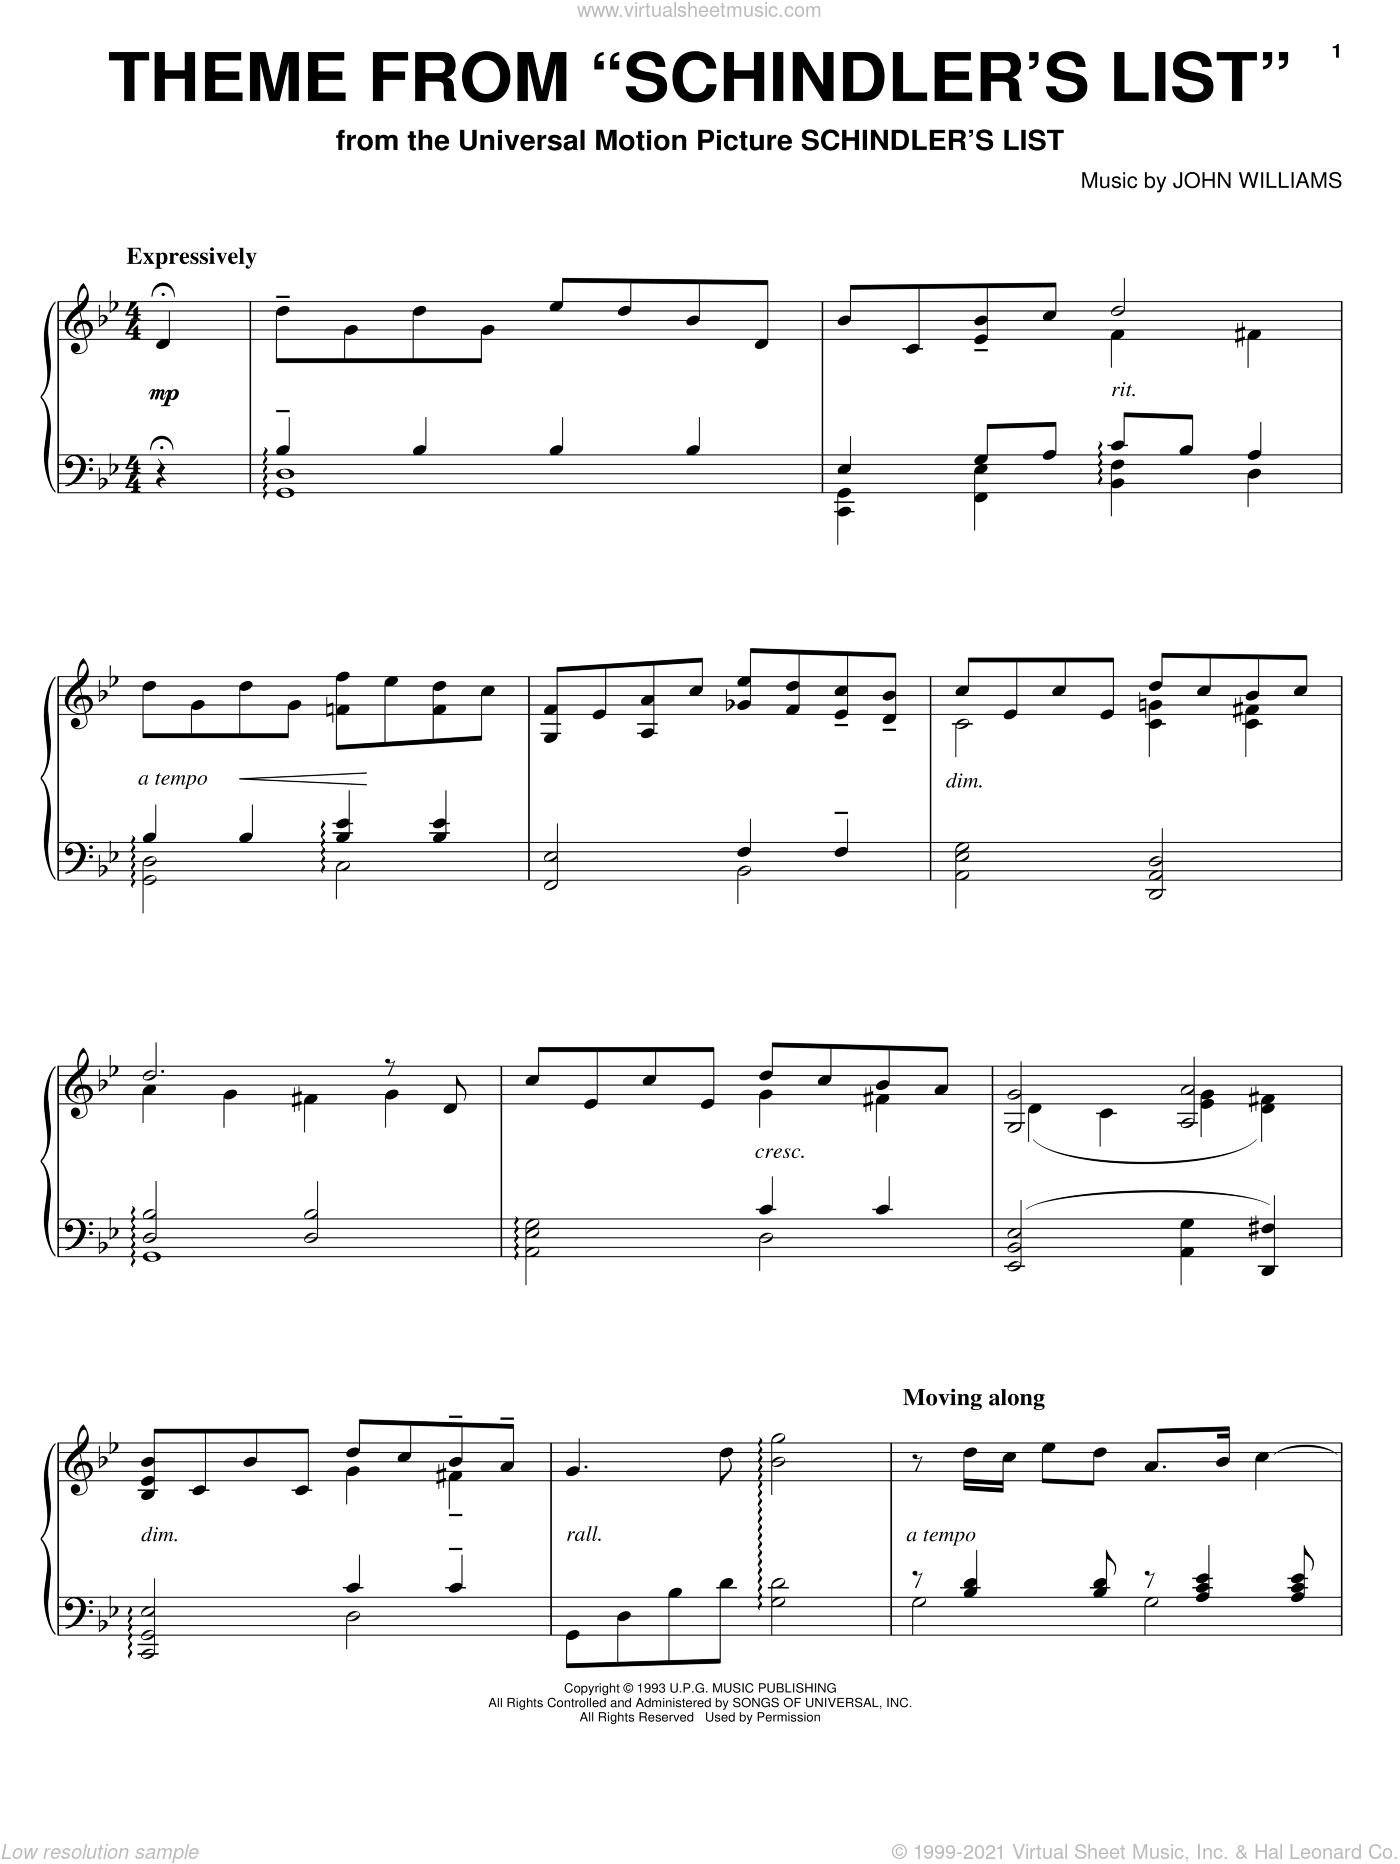 Theme from Schindler's List sheet music for piano solo by John Williams